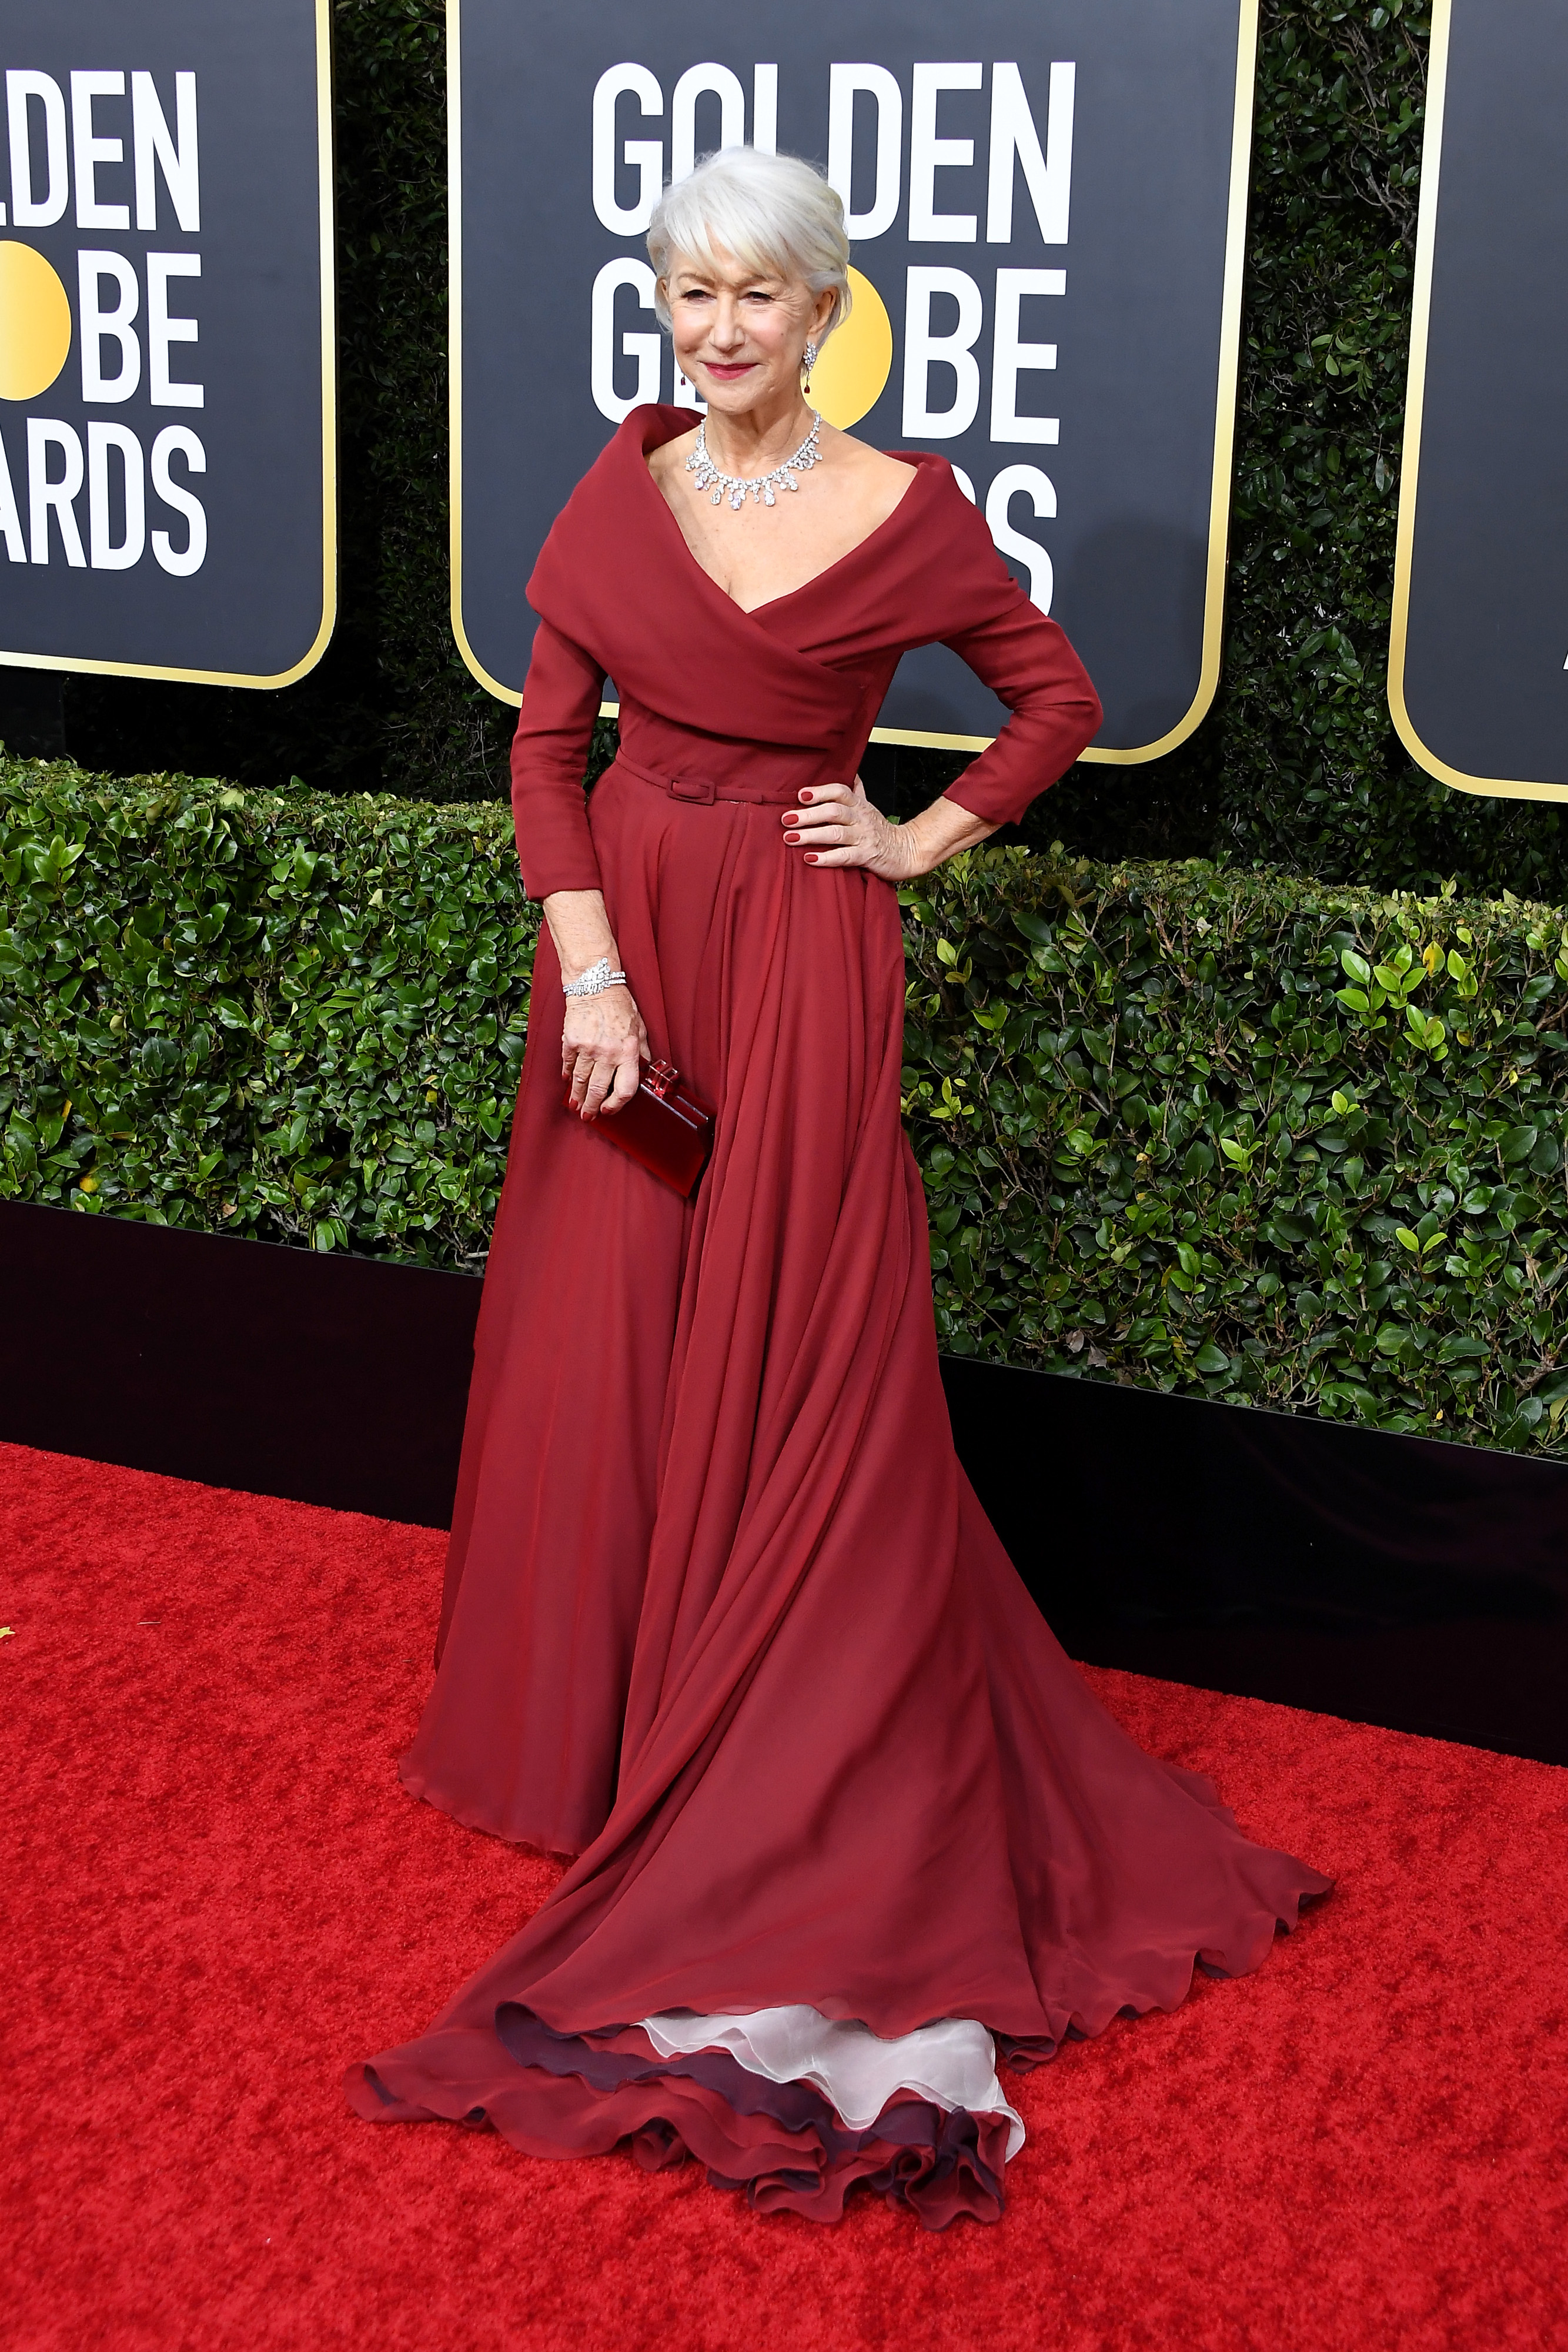 BEVERLY HILLS, CALIFORNIA - JANUARY 05: Helen Mirren attends the 77th Annual Golden Globe Awards at The Beverly Hilton Hotel on January 05, 2020 in Beverly Hills, California. (Photo by Steve Granitz/WireImage)